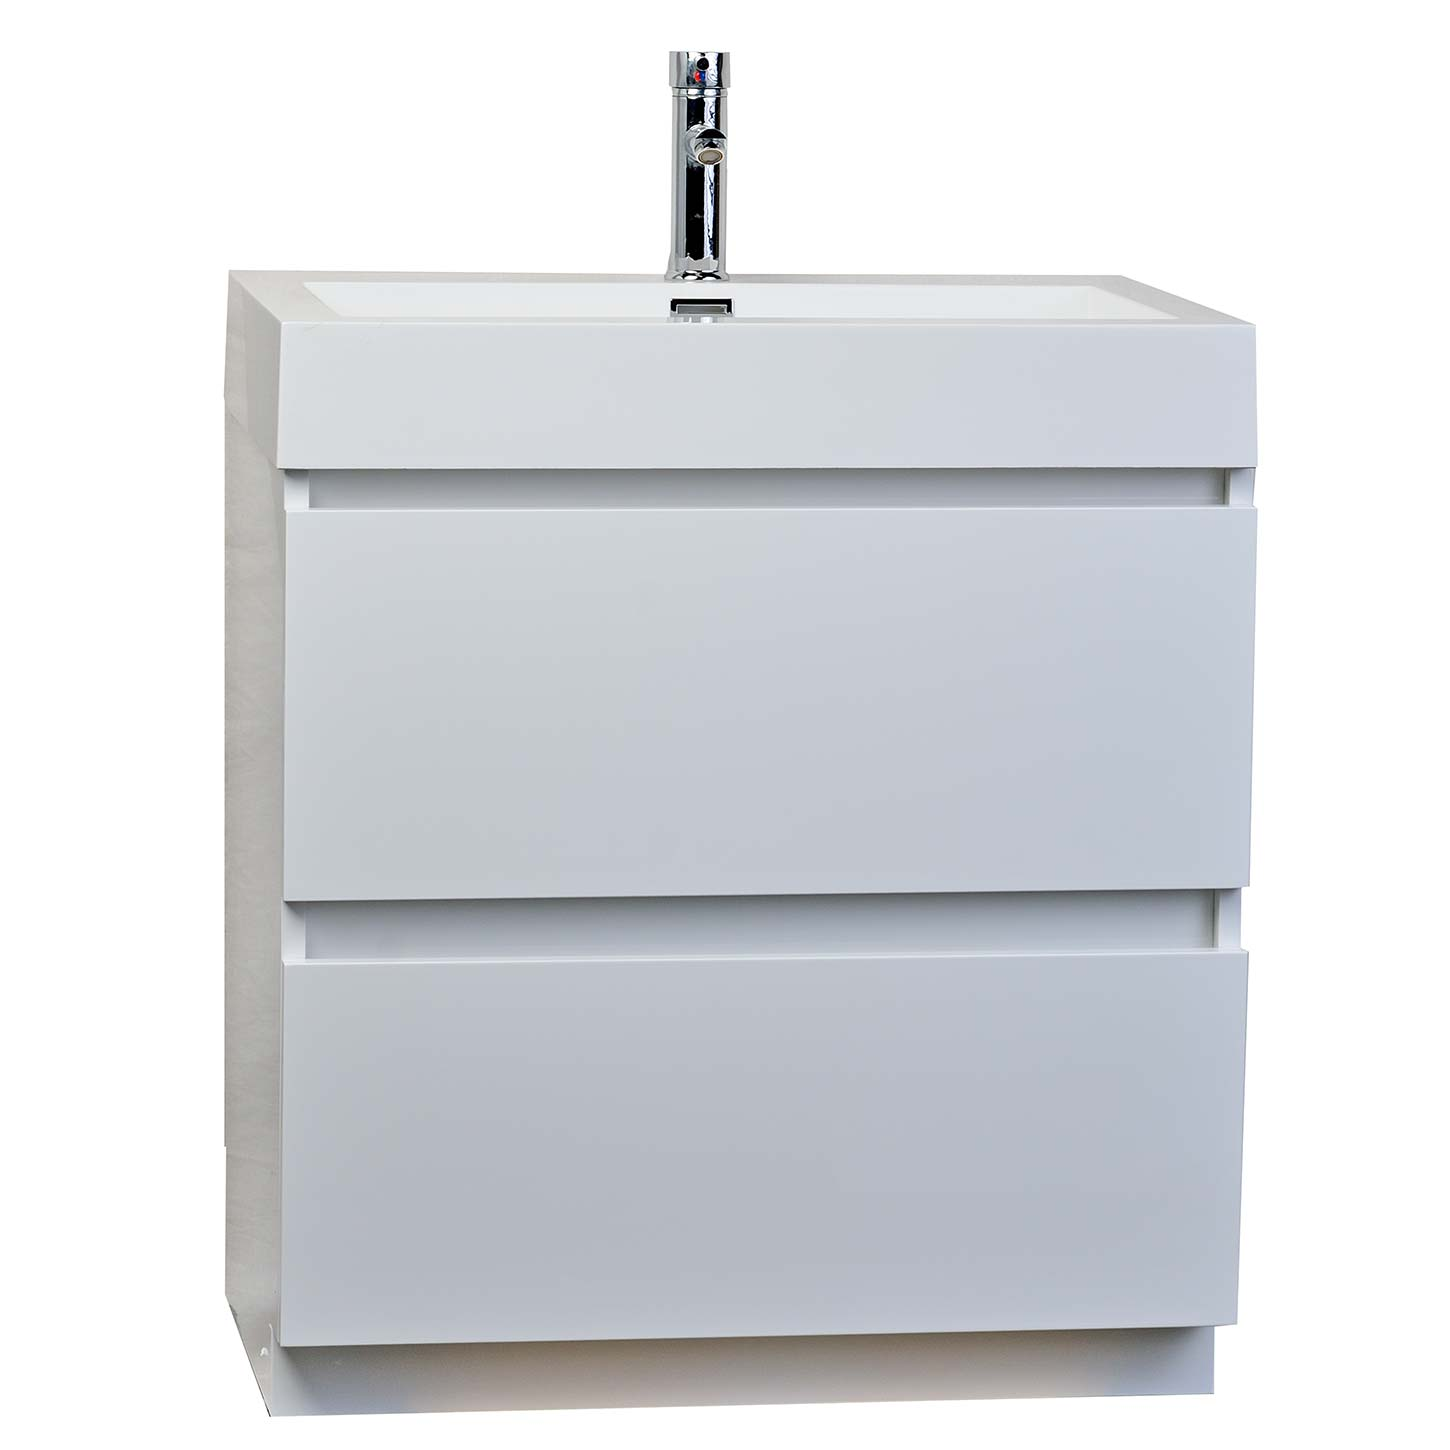 Delectable 25 30 Bathroom Vanity Modern Design Decoration Of Milano 30 Inch Modern White